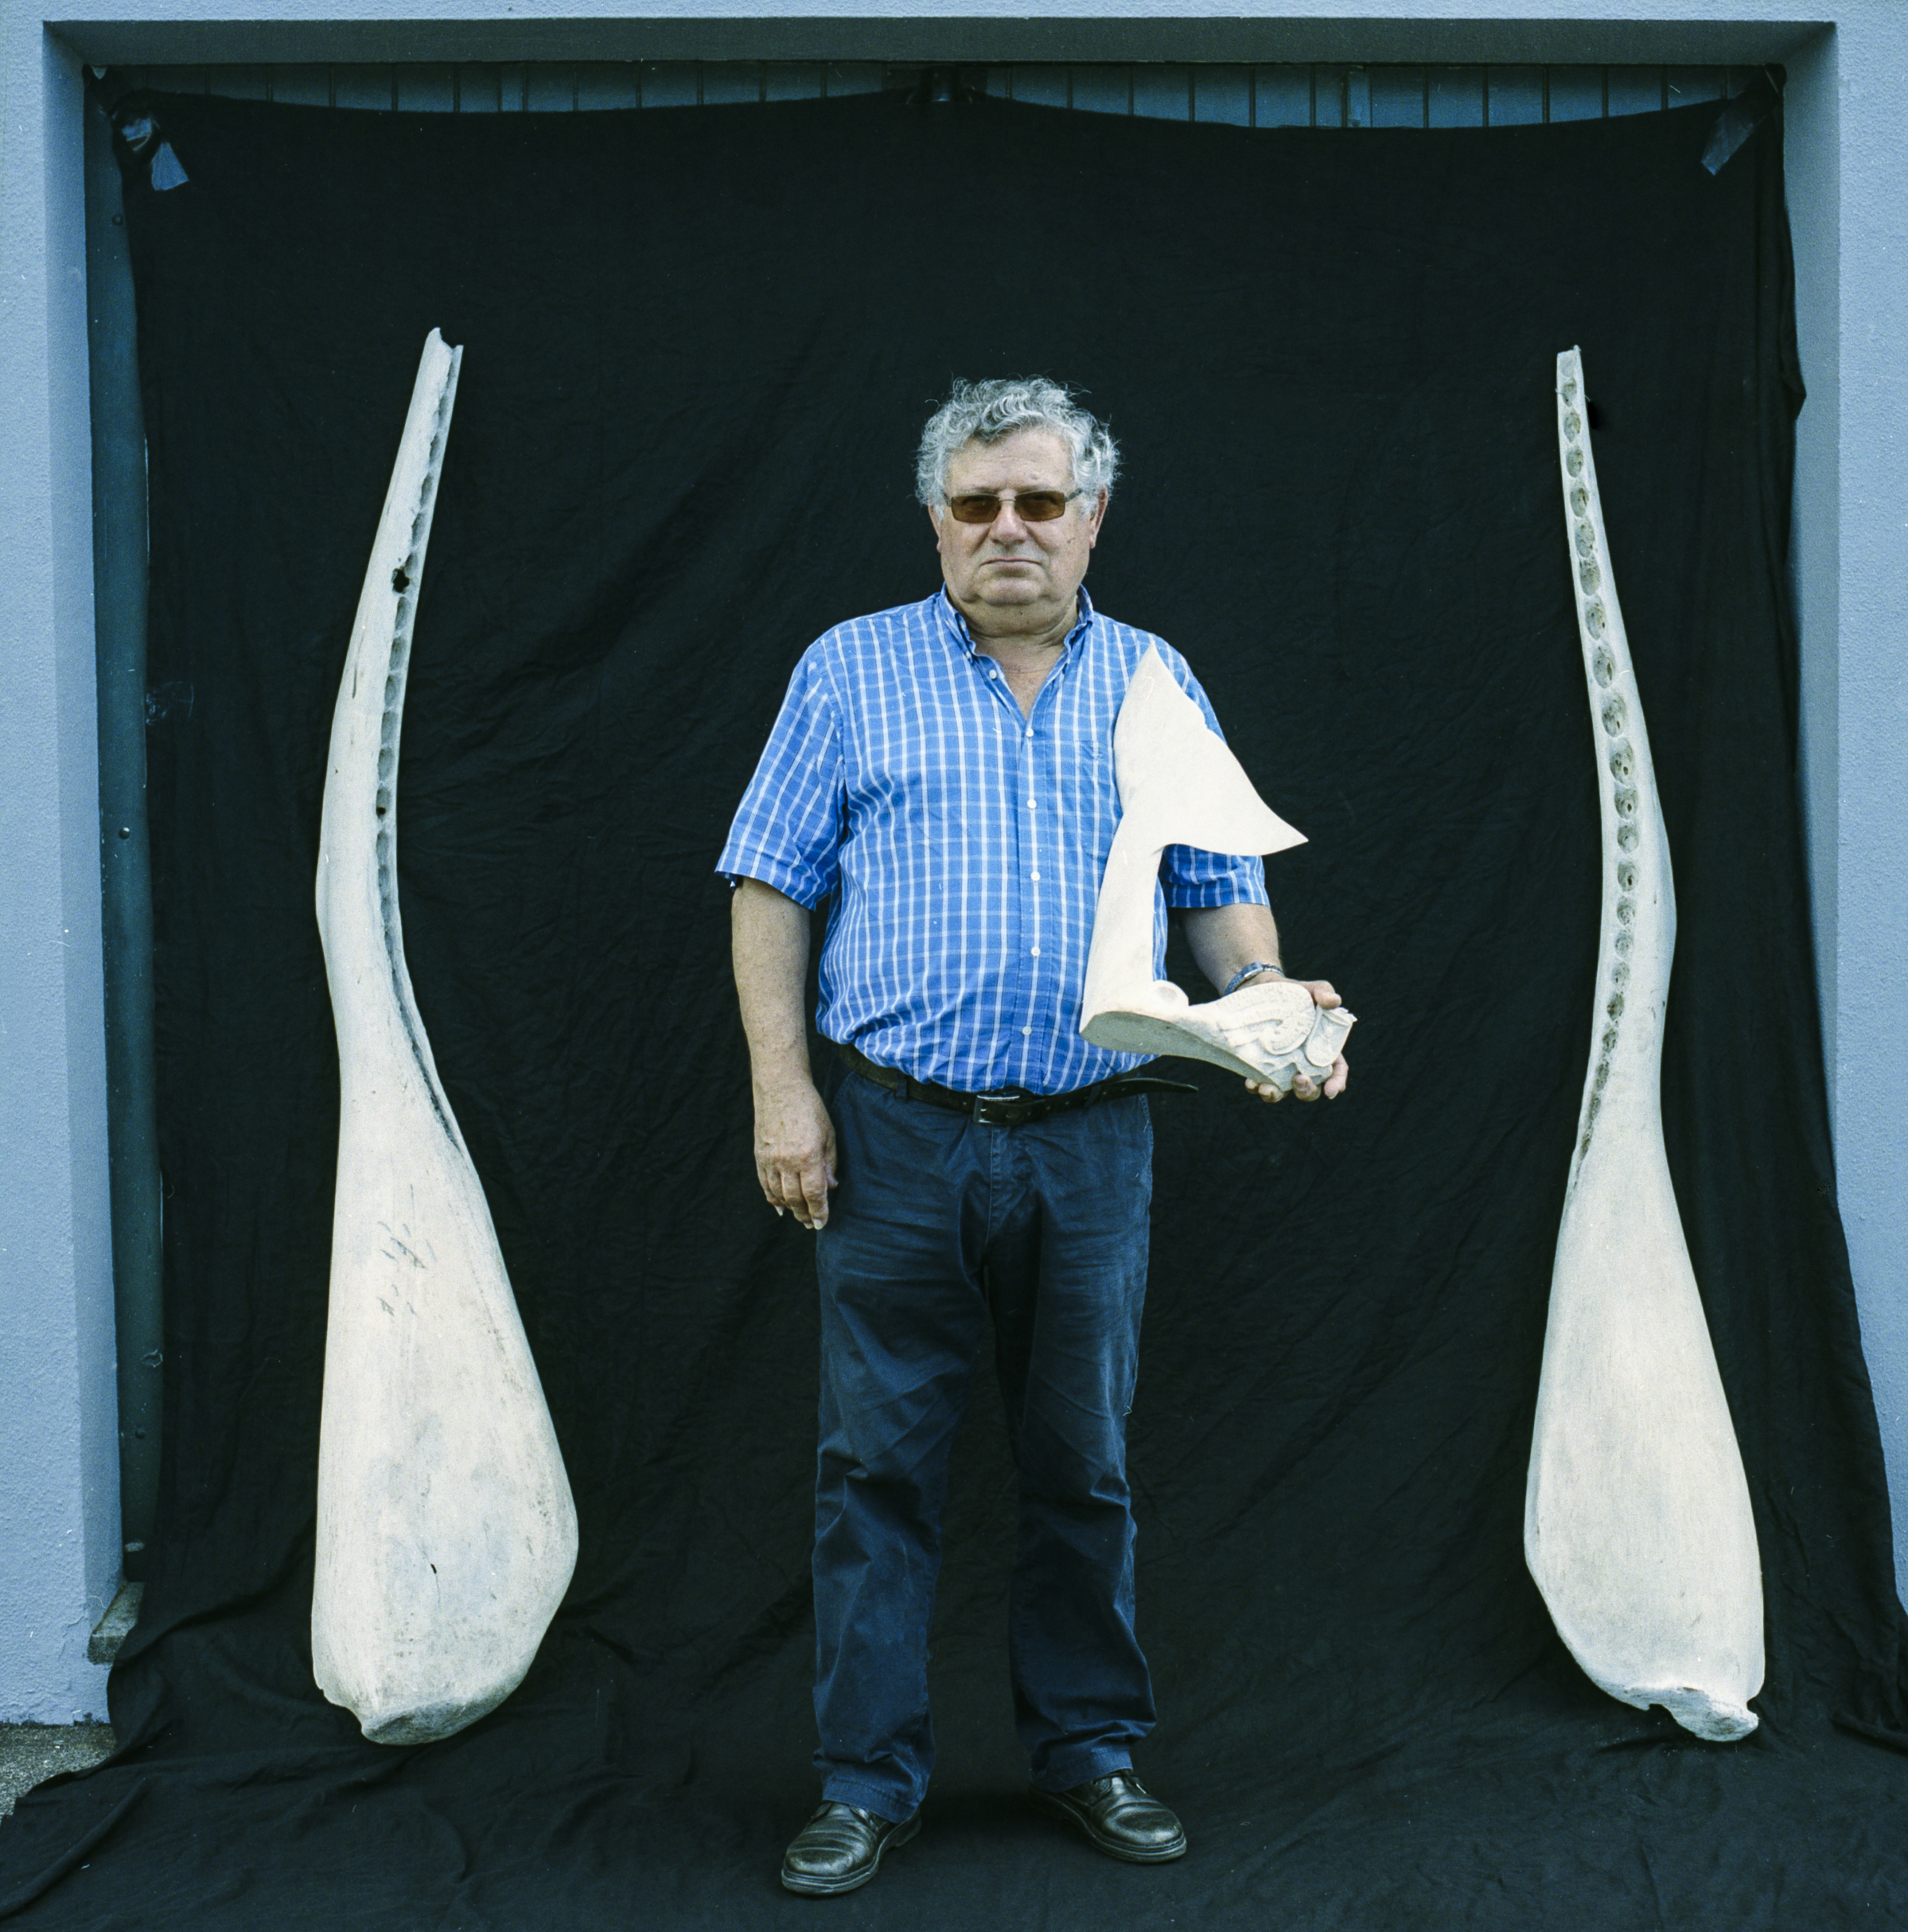 Manuel Alves Gonçalves, former banker and native of the island of Pico, has been promoting the lost art of Azorean  Scrimshaw, the carving of the jaw bone and teeth of the whale,for the last 26 years.